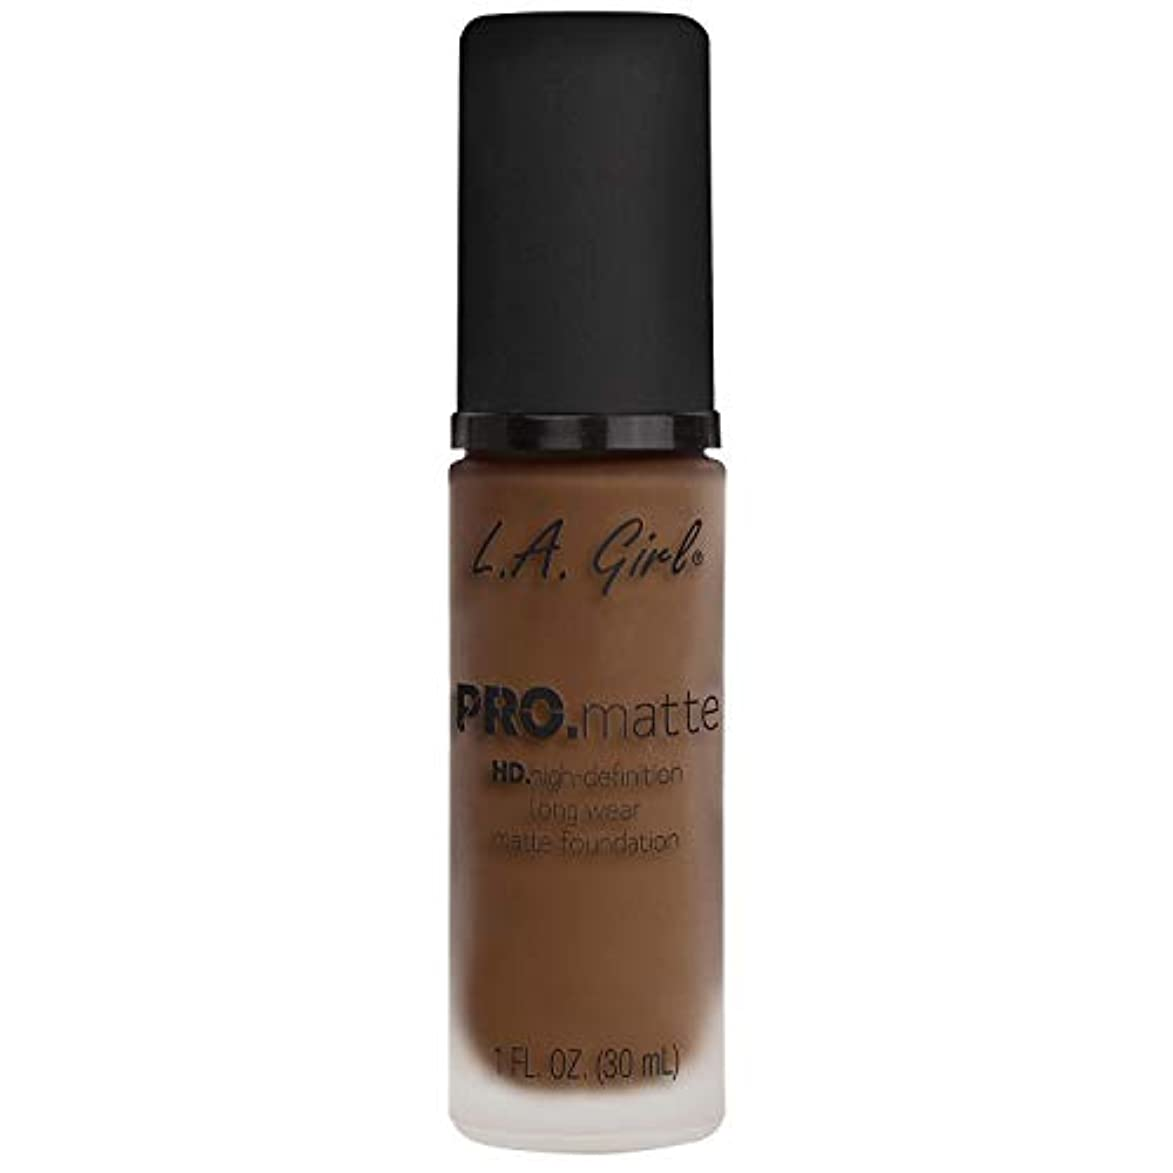 距離羊憤る(6 Pack) L.A. GIRL Pro Matte Foundation - Creamy Cocoa (並行輸入品)